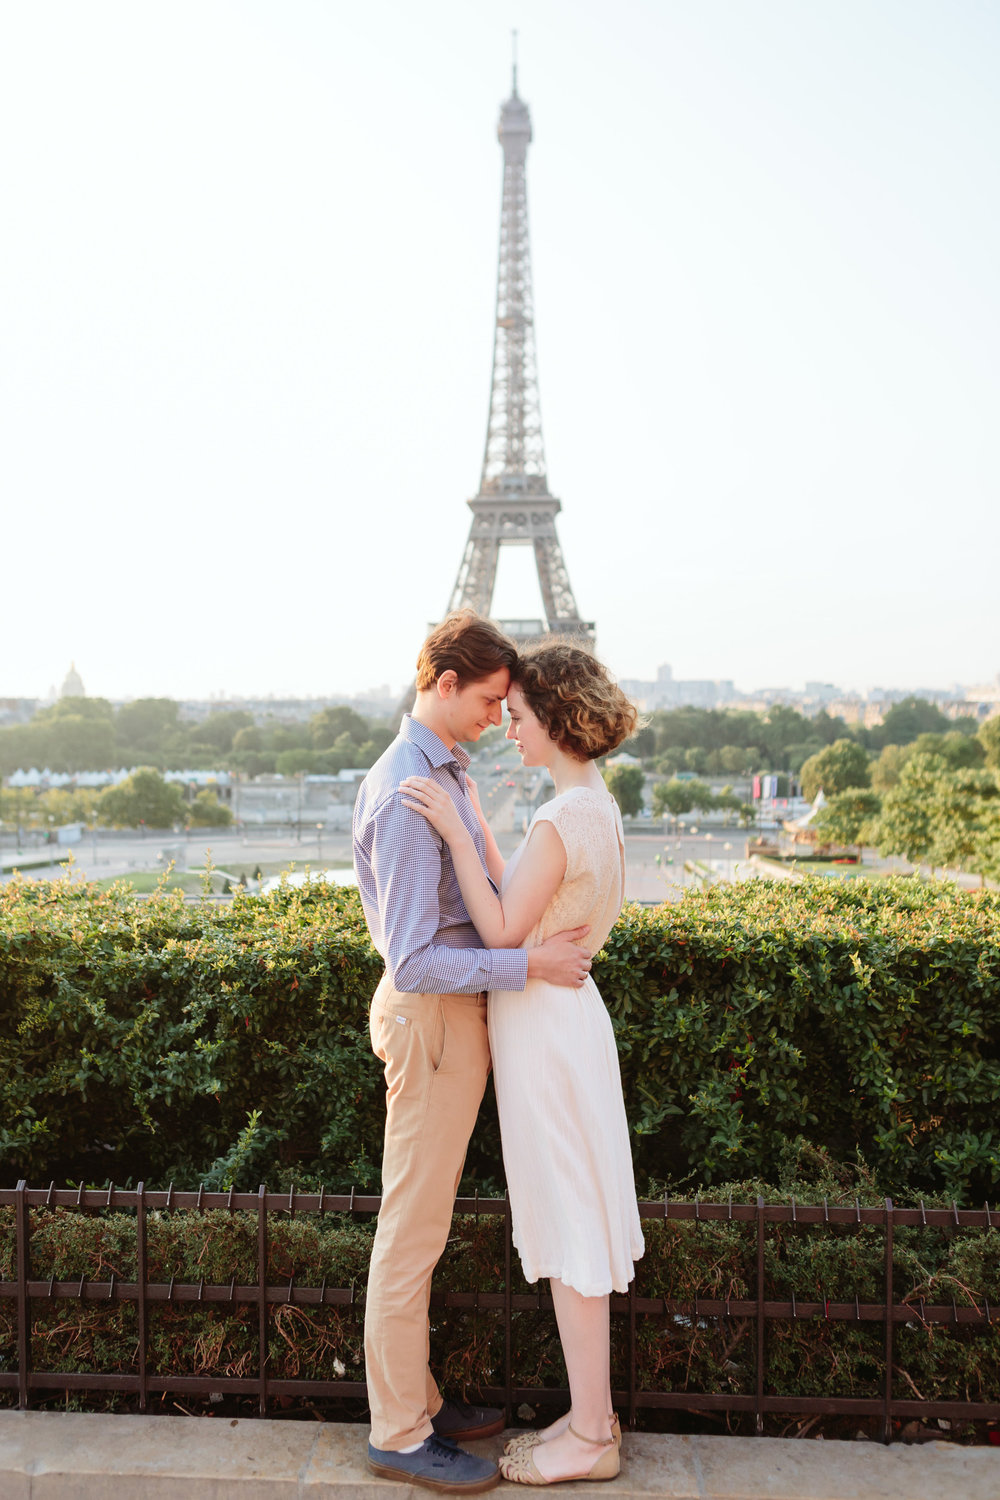 Couple in love at Trocadero by the Eiffel Tower at sunrise captured by Paris Photographer Federico Guendel IheartParisFr